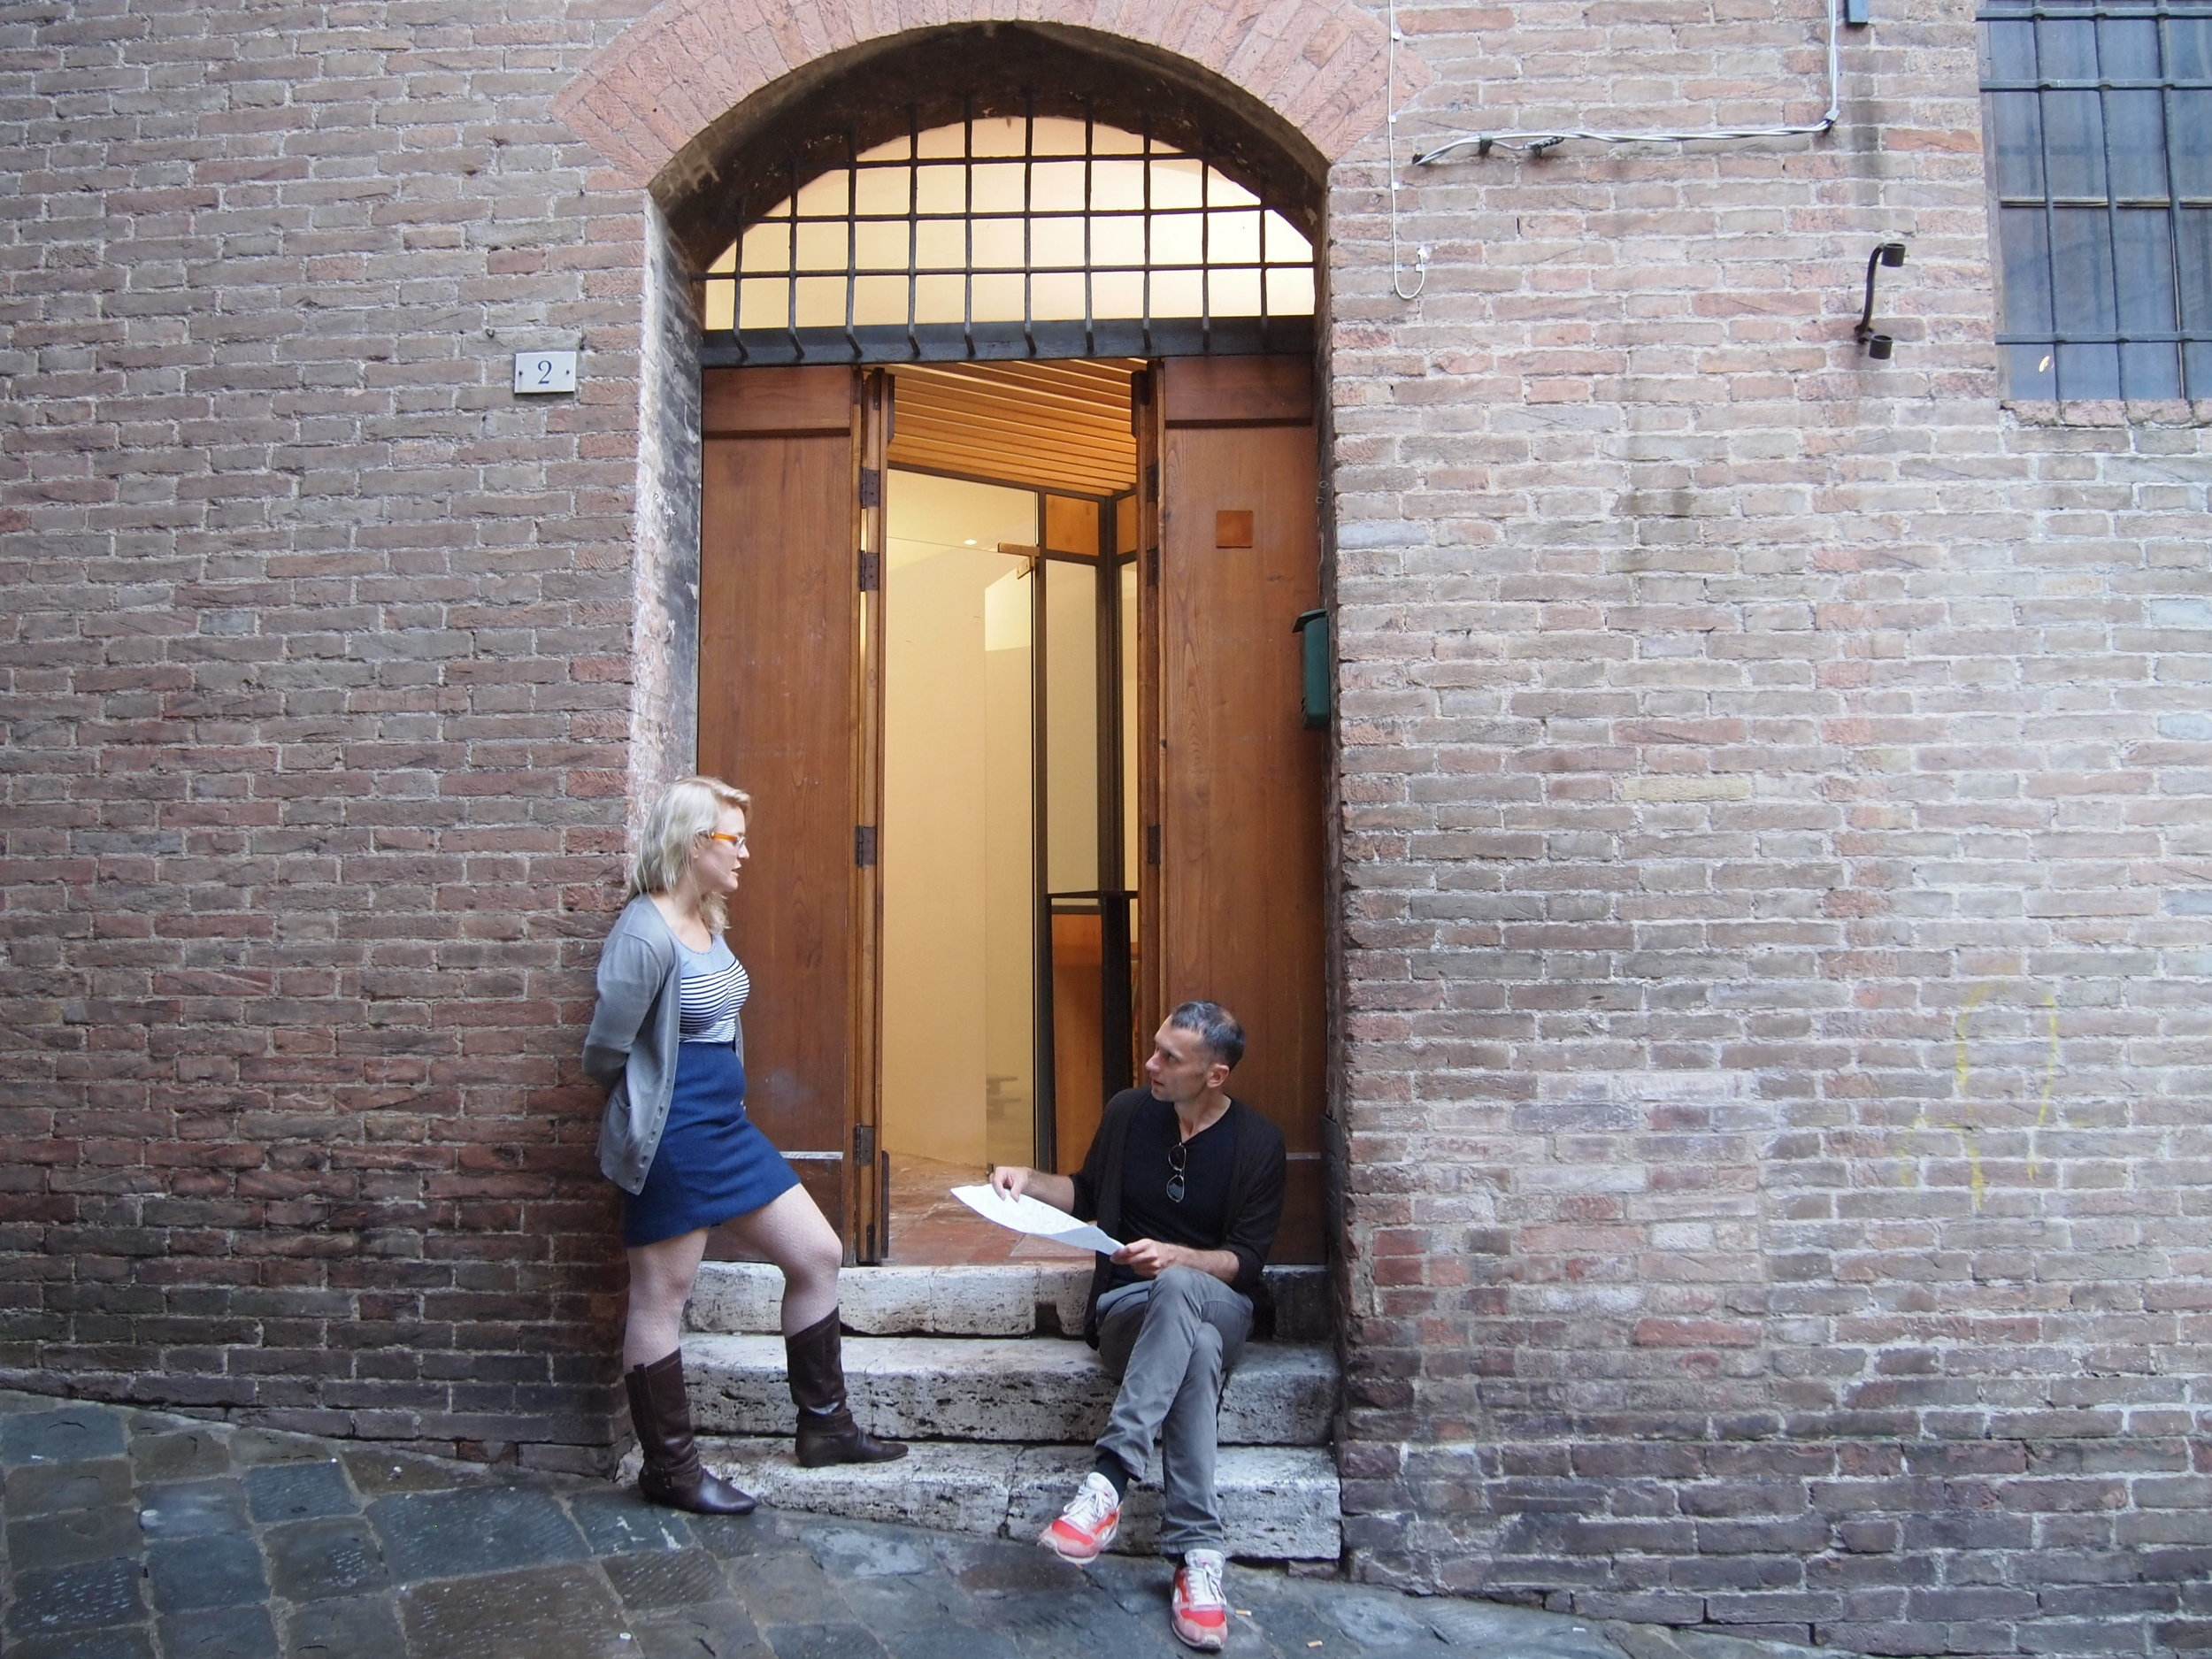 entrance-to-bureau-for-open-culture-siena_8099262426_o.jpg